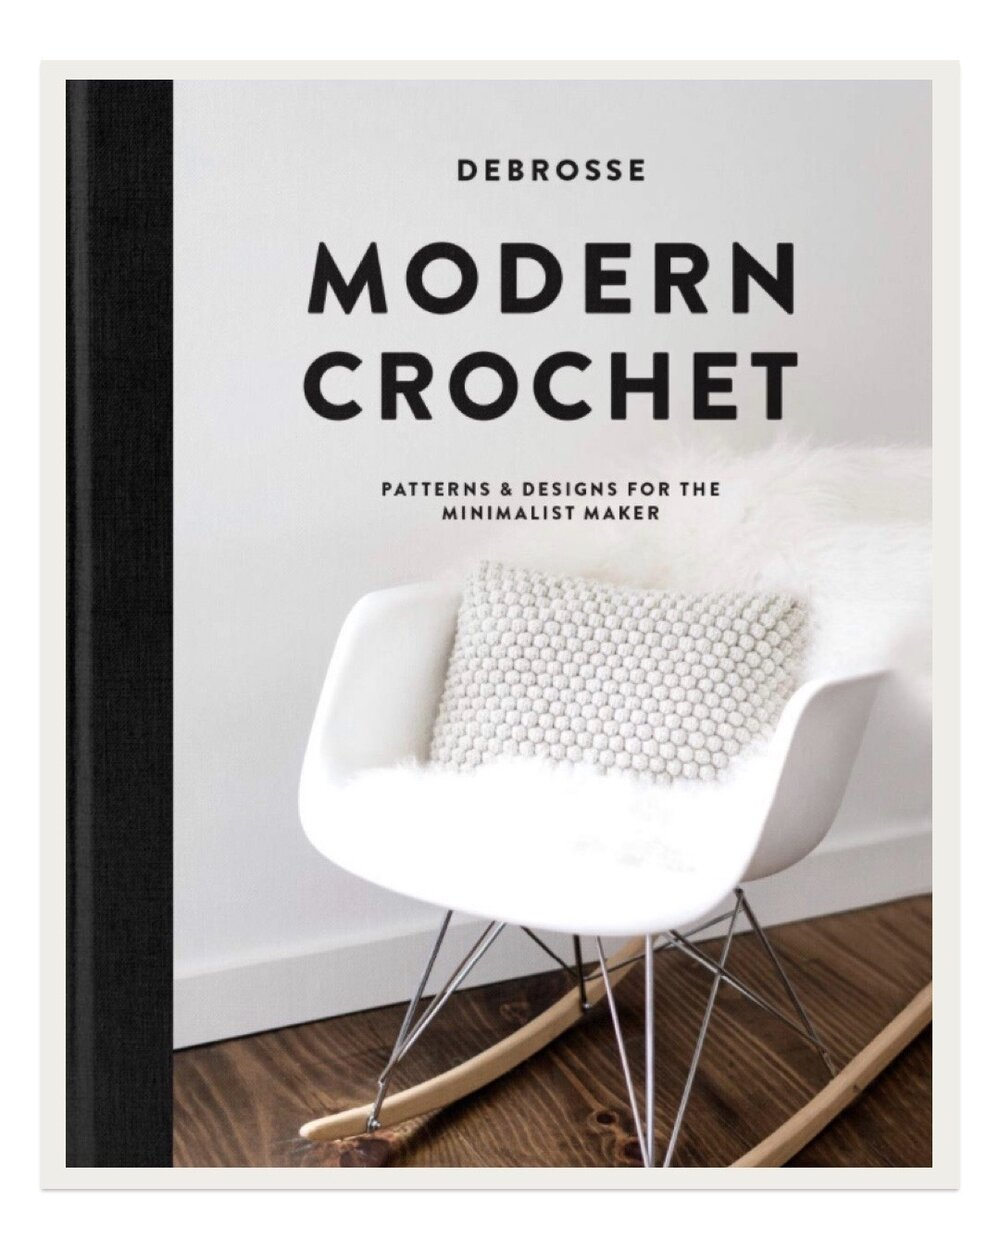 Never has crochet looked so good! Modern Crochet is the ultimate book for beginners out there who are looking for sophisticated, chic accessories for their homes and wardrobes. This complete text includes the most thorough explanation of how to understand crochet patterns and stitches, and even as an advanced crocheter I look to it for inspo. The book itself is gorgeous as well and totally coffee-table-worthy.